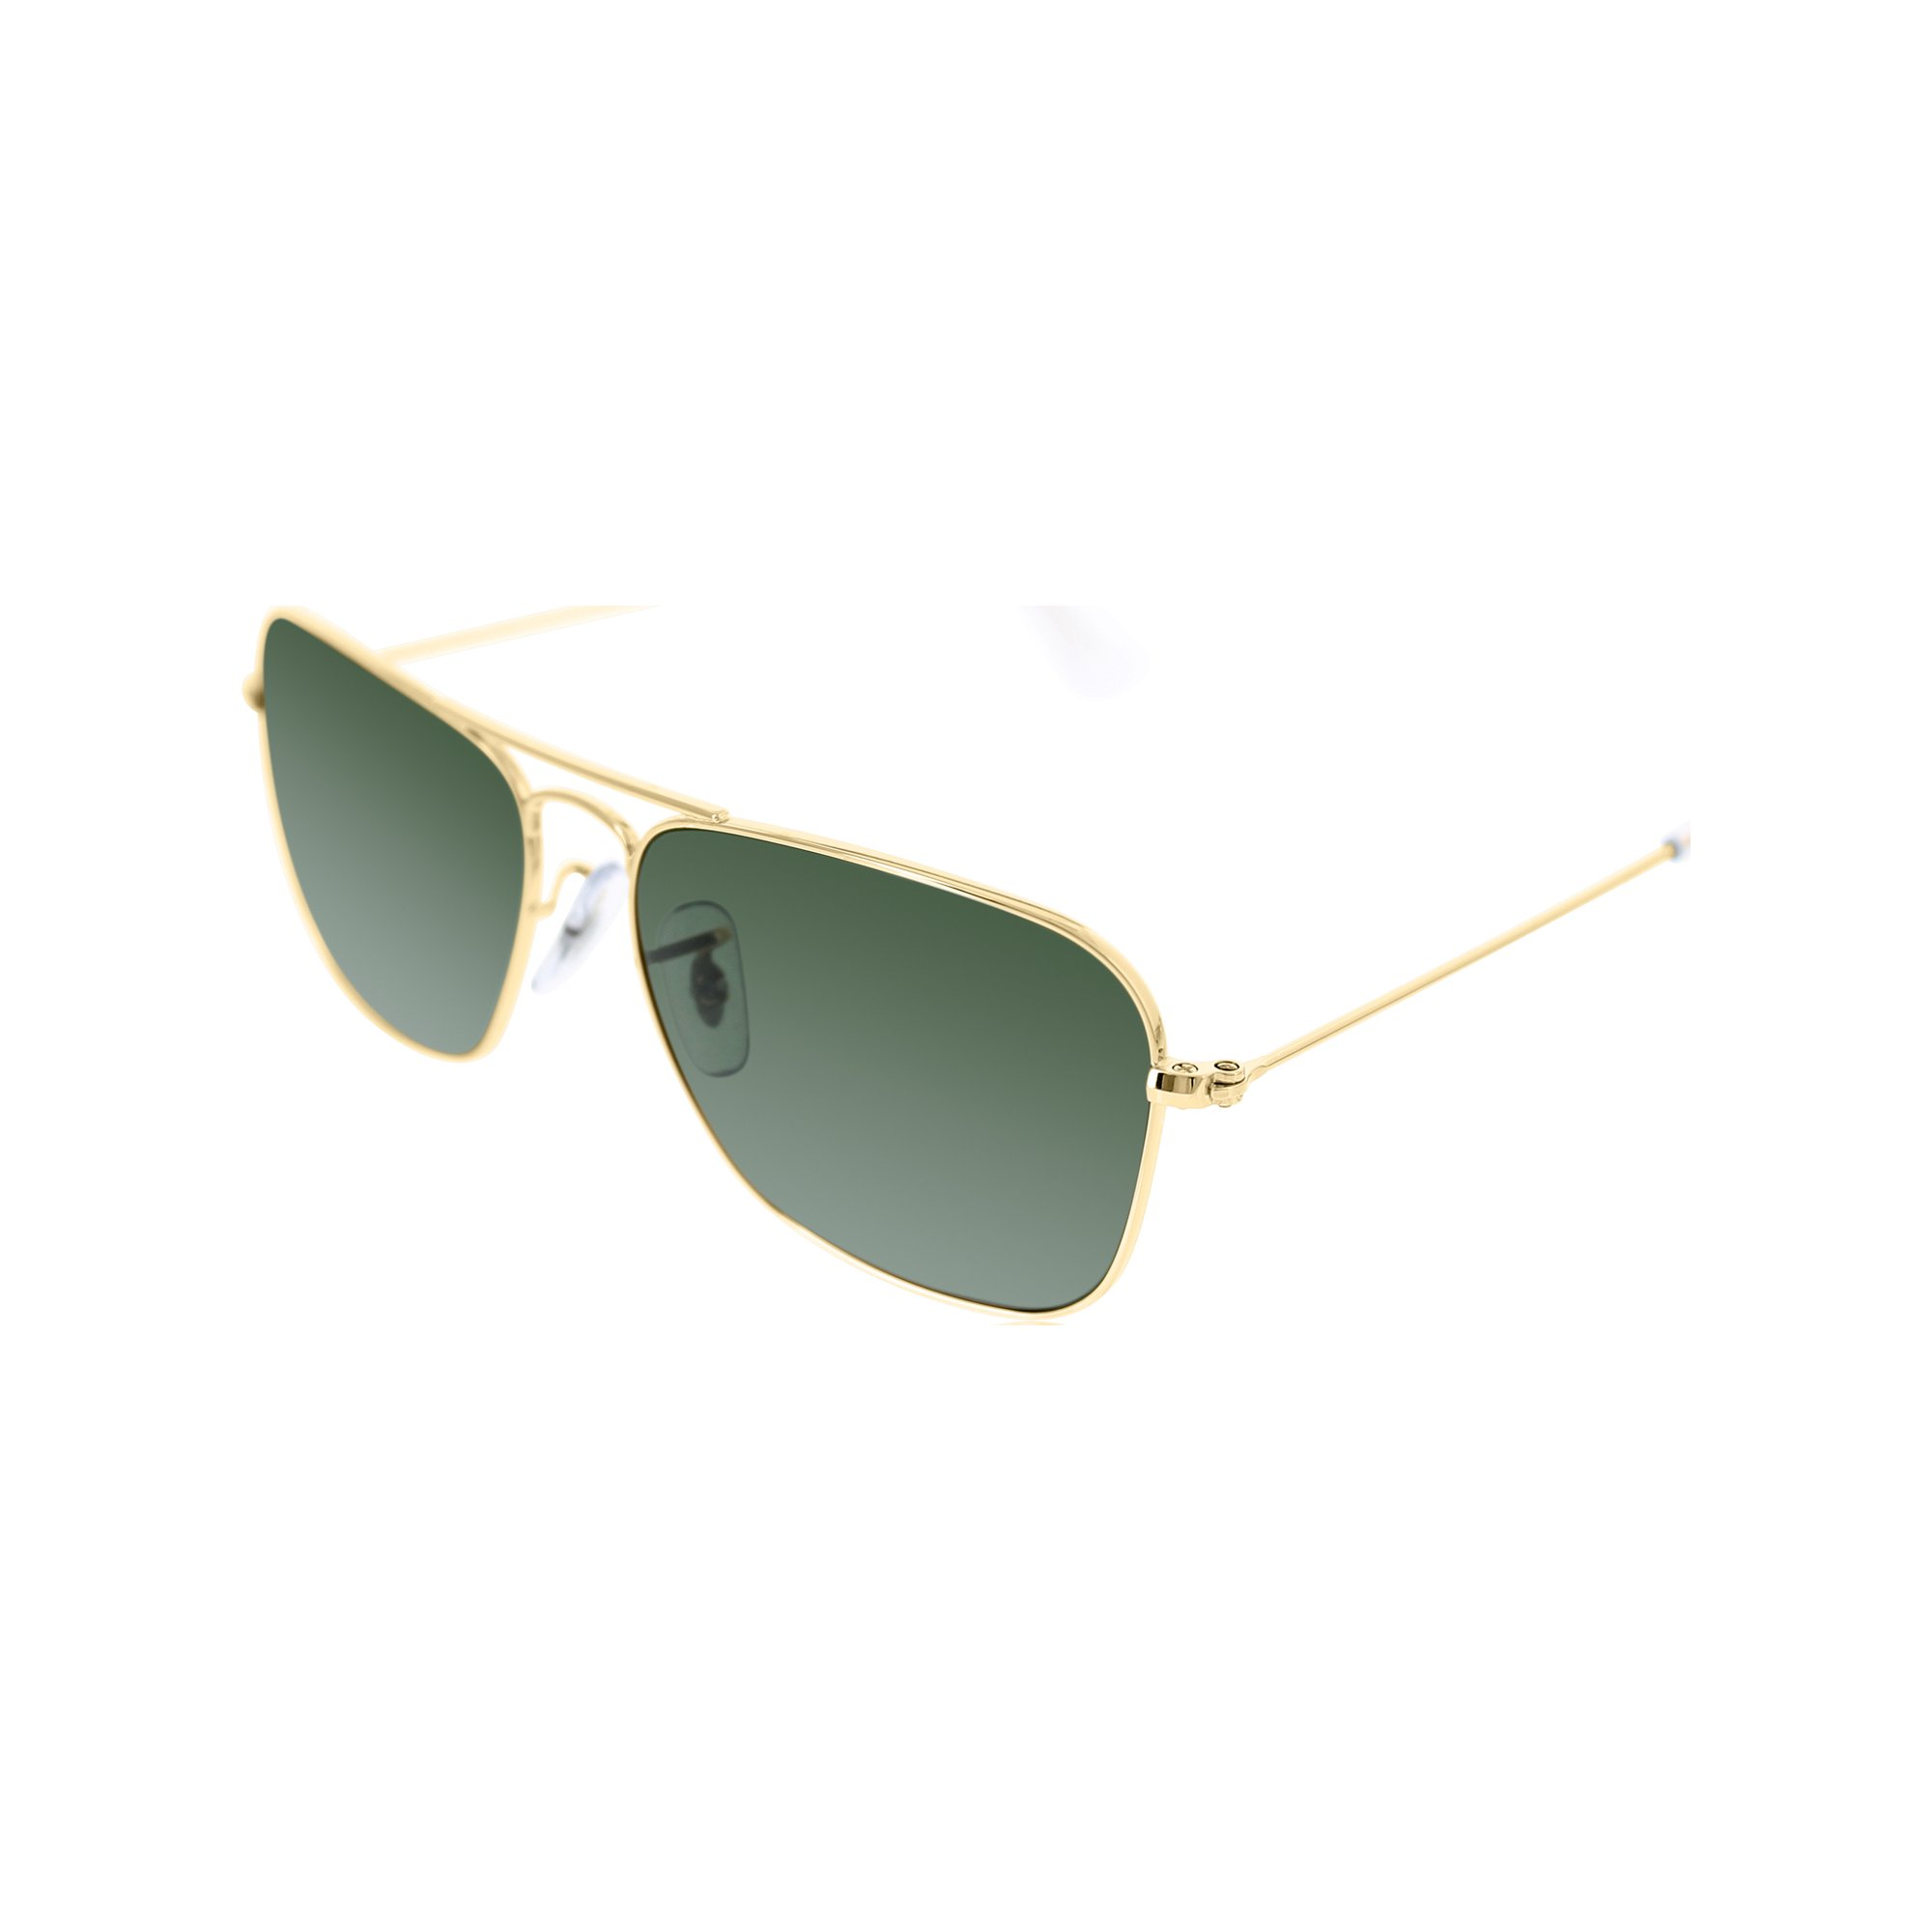 ec181b7536a0 Ray-Ban Men s Caravan RB3136-001-55 Gold Square Sunglasses